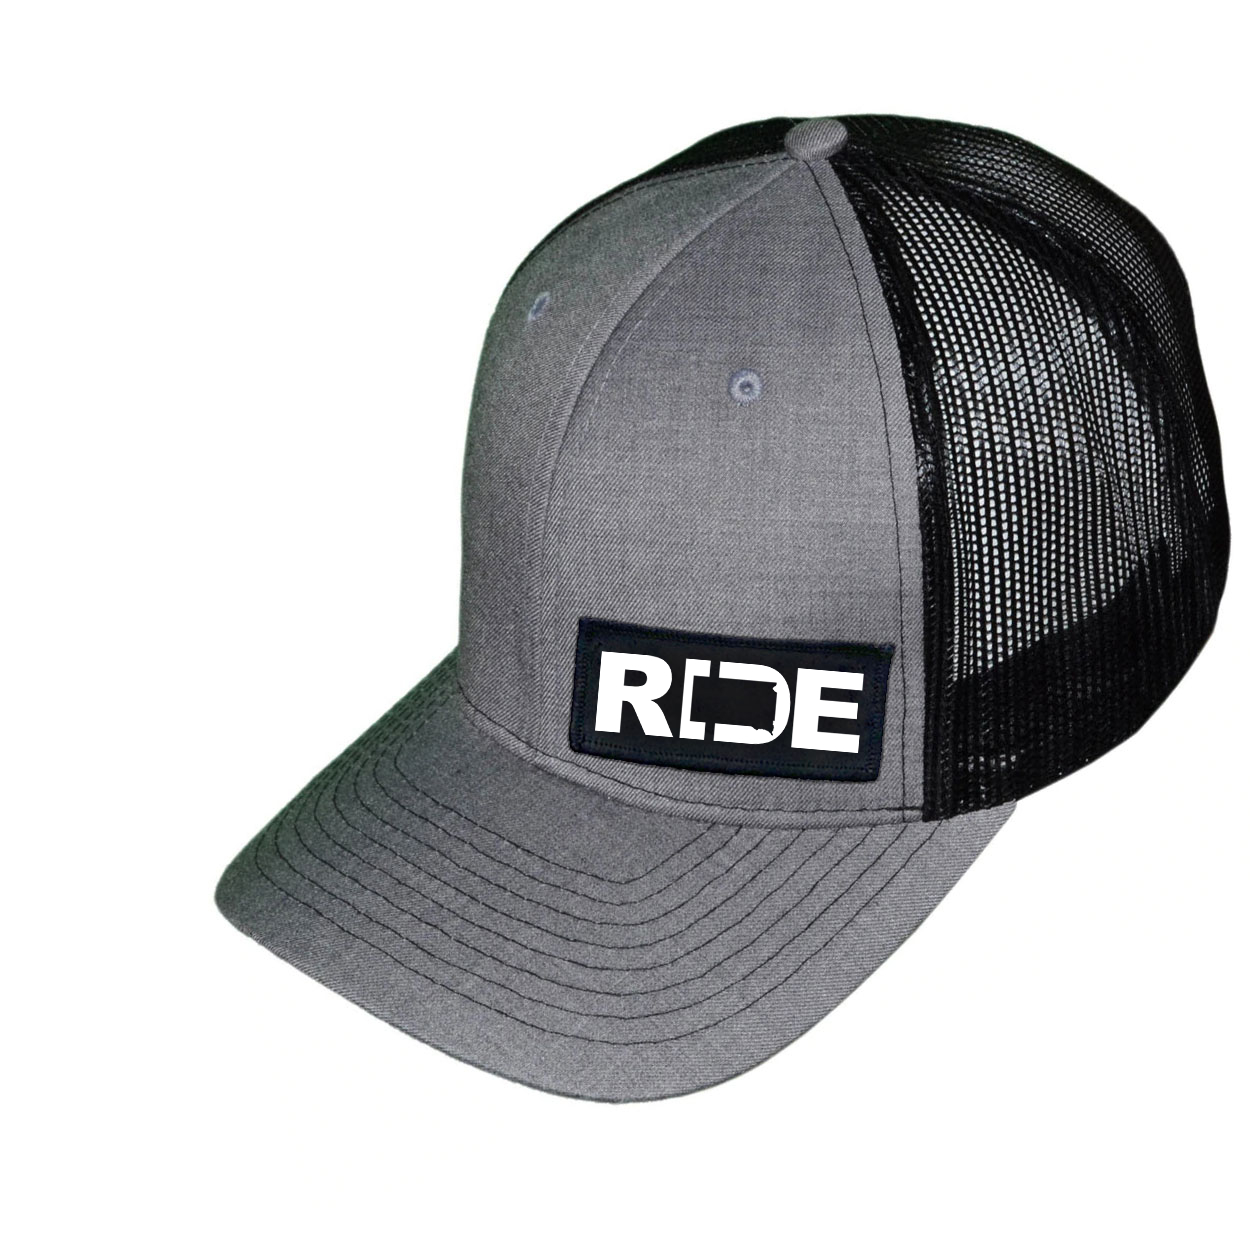 Ride South Dakota Night Out Woven Patch Snapback Trucker Hat Heather Gray/Black (White Logo)